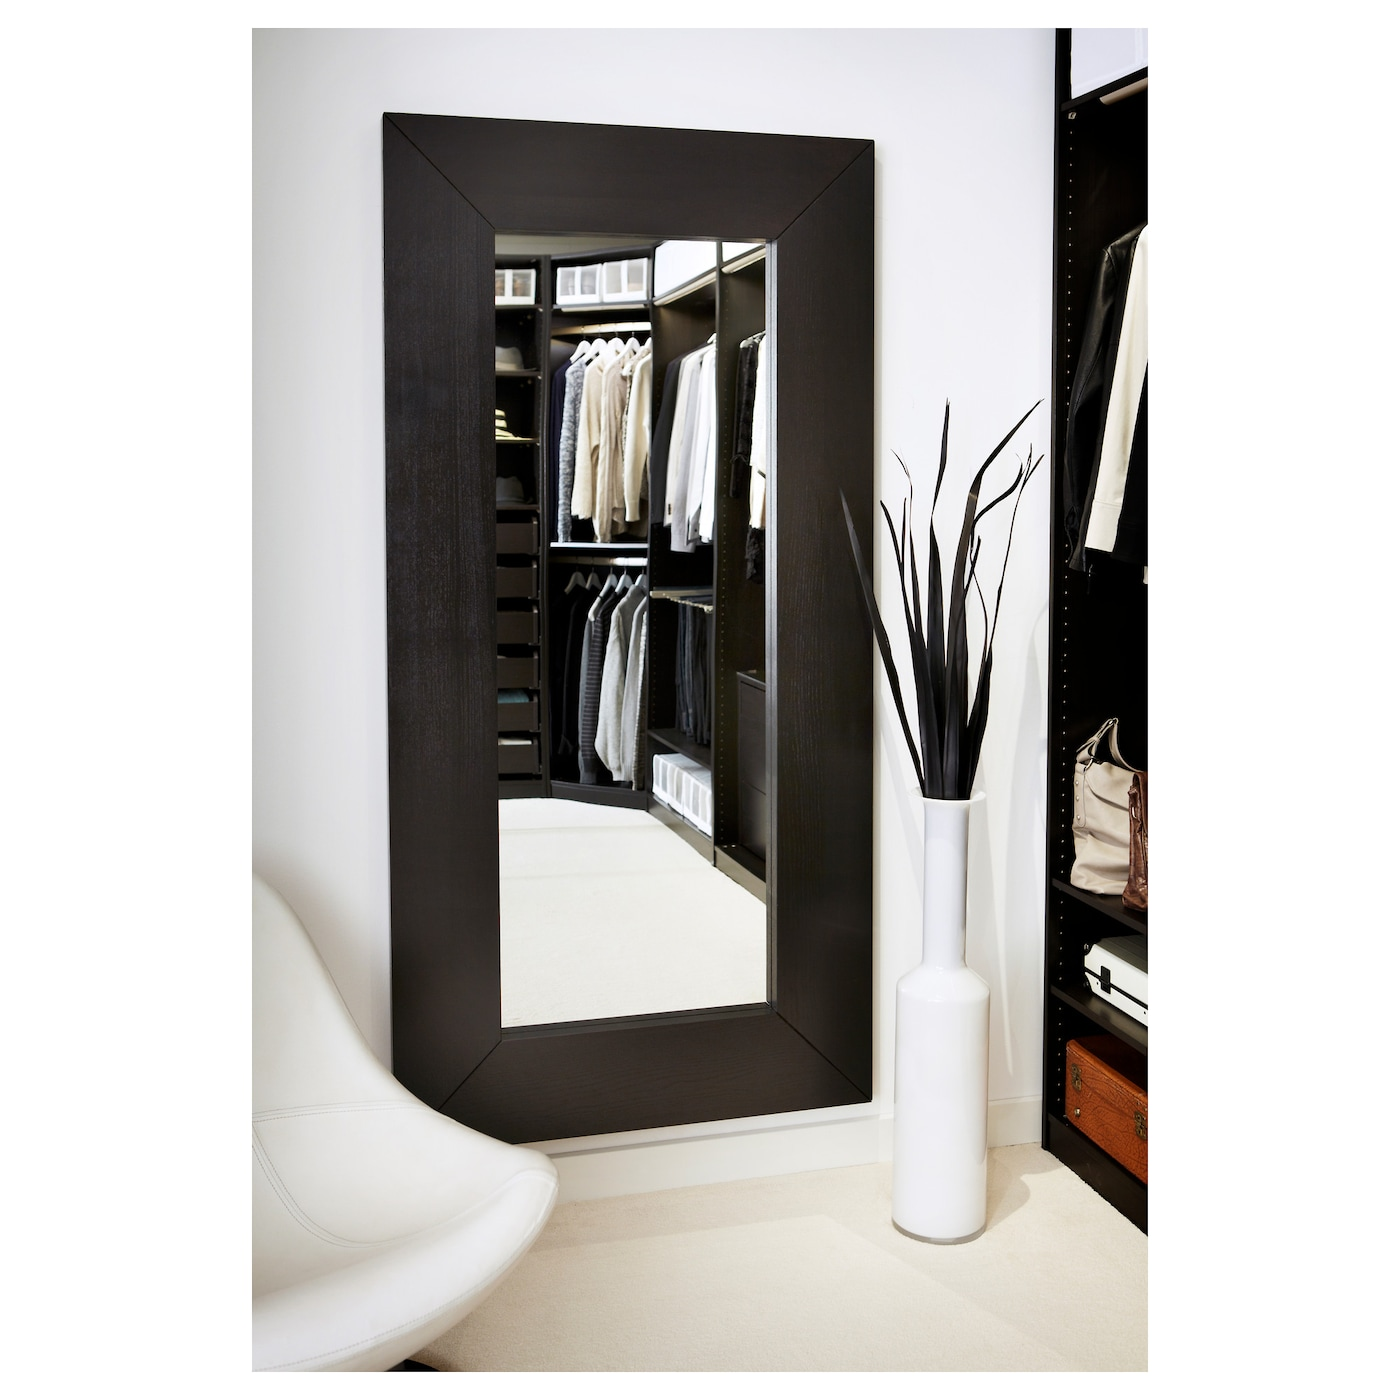 mongstad mirror black brown 94 x 190 cm ikea